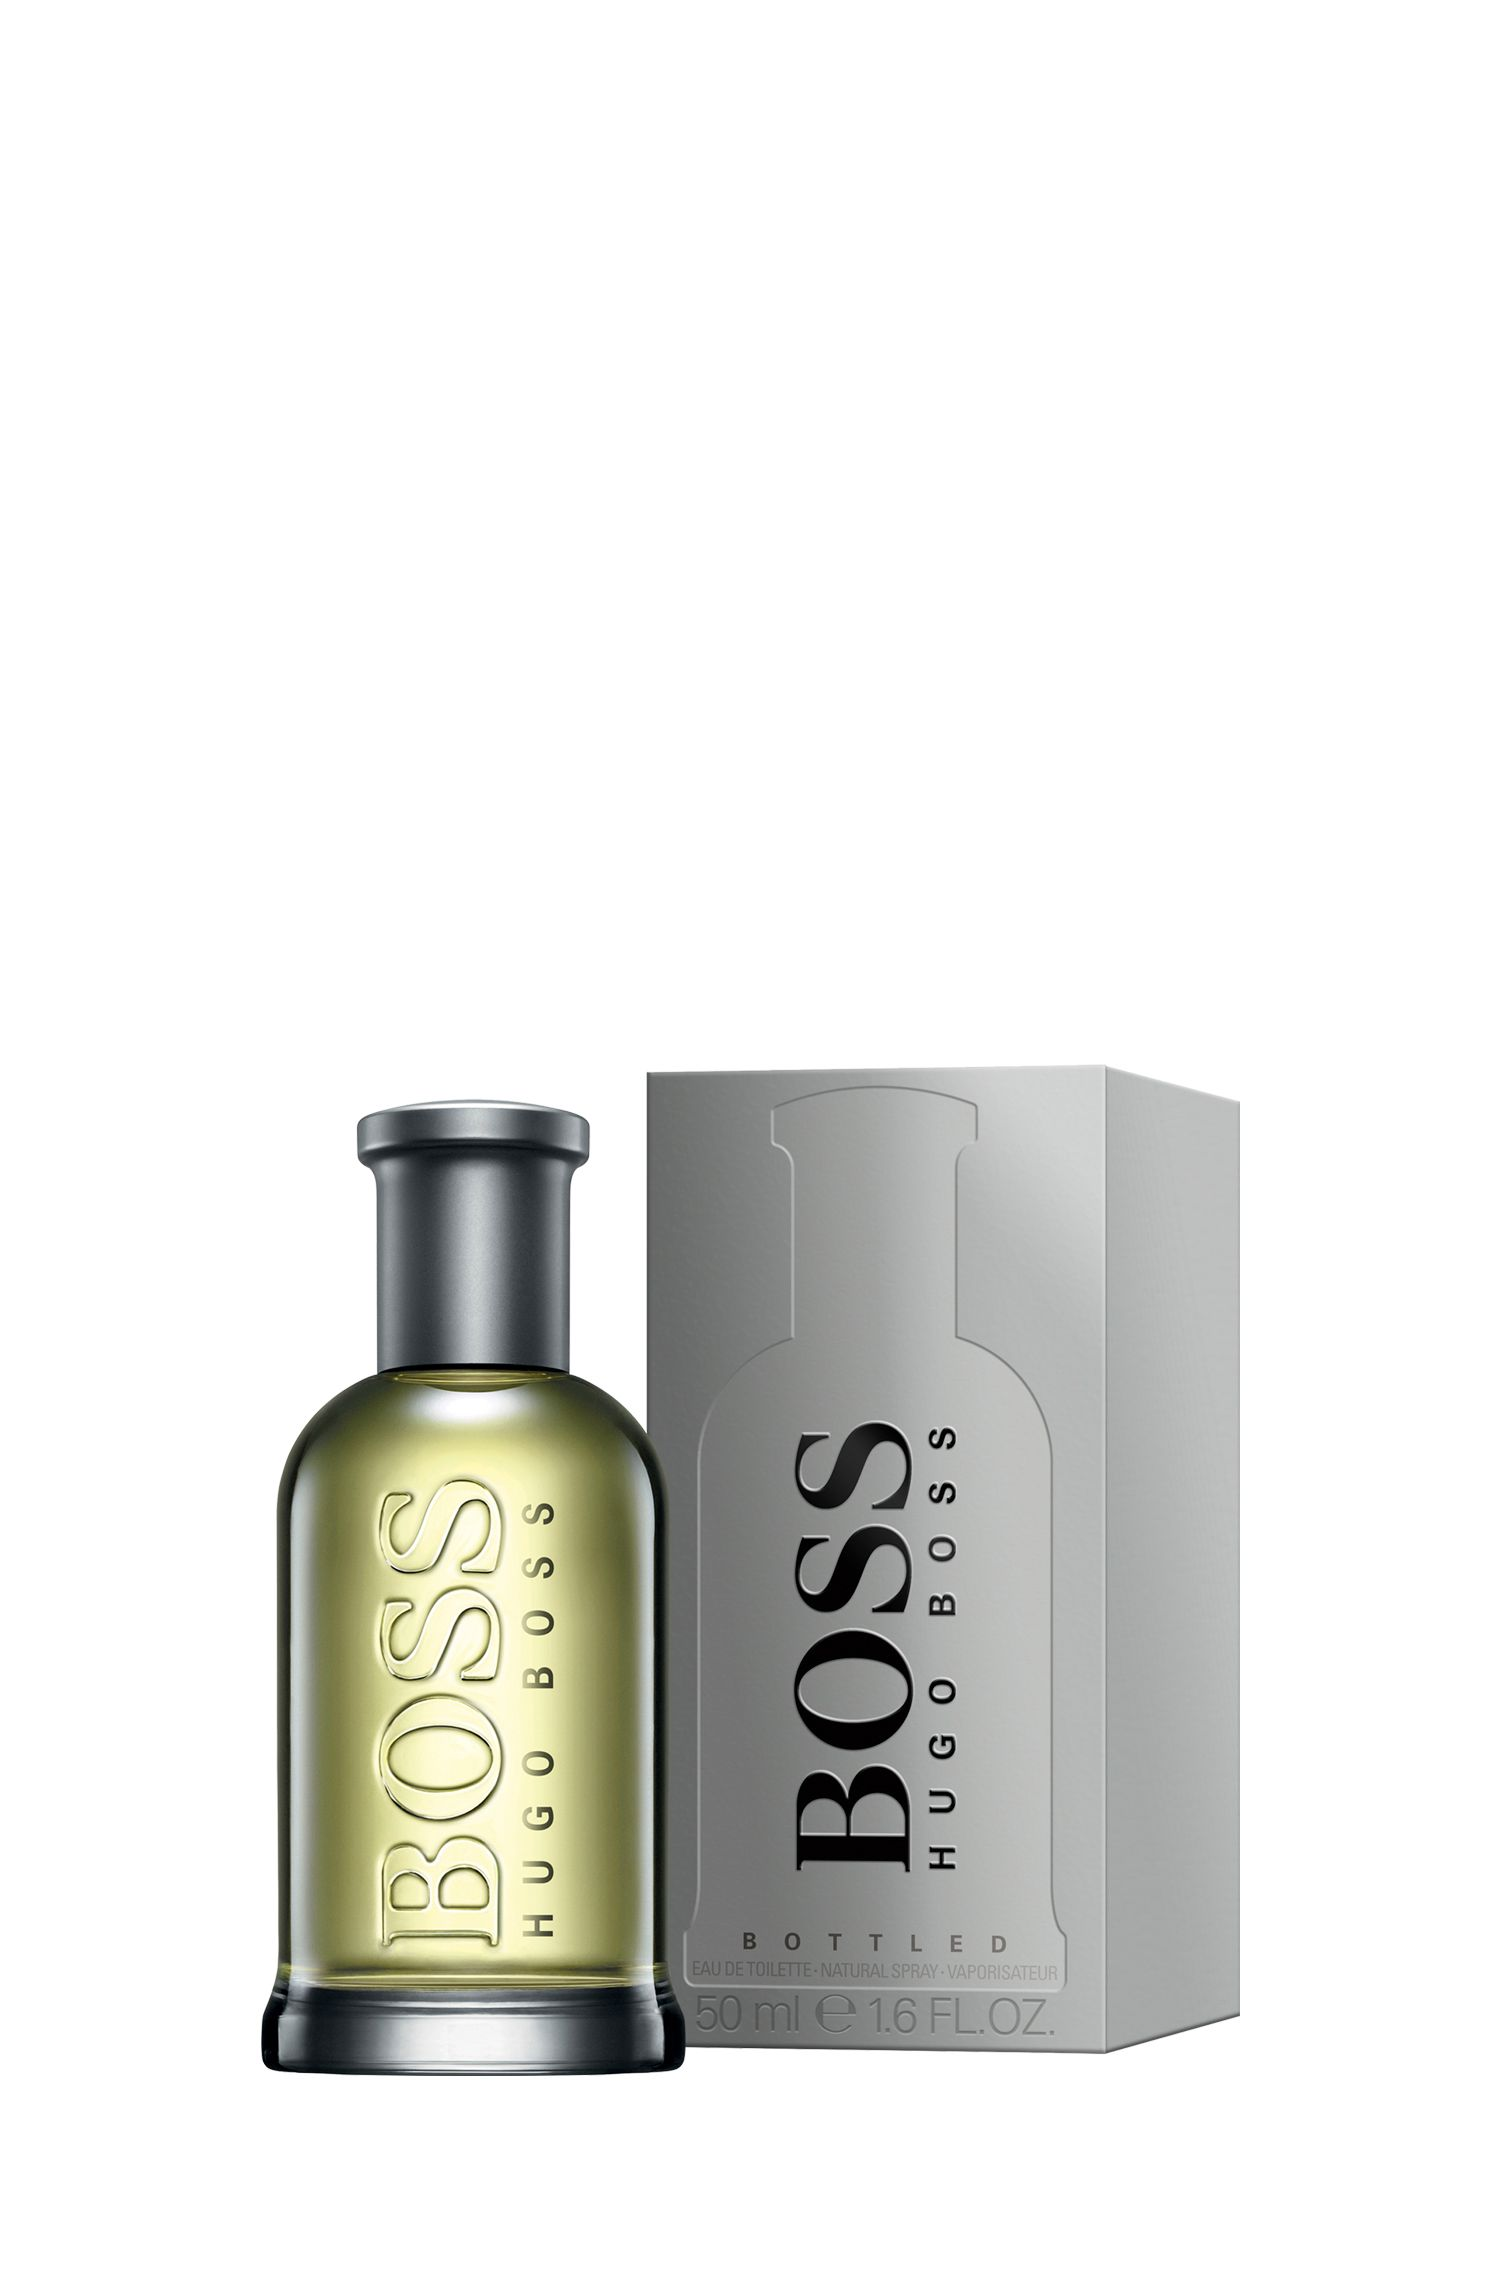 Eau de toilette BOSS Bottled da 50 ml, Assorted-Pre-Pack